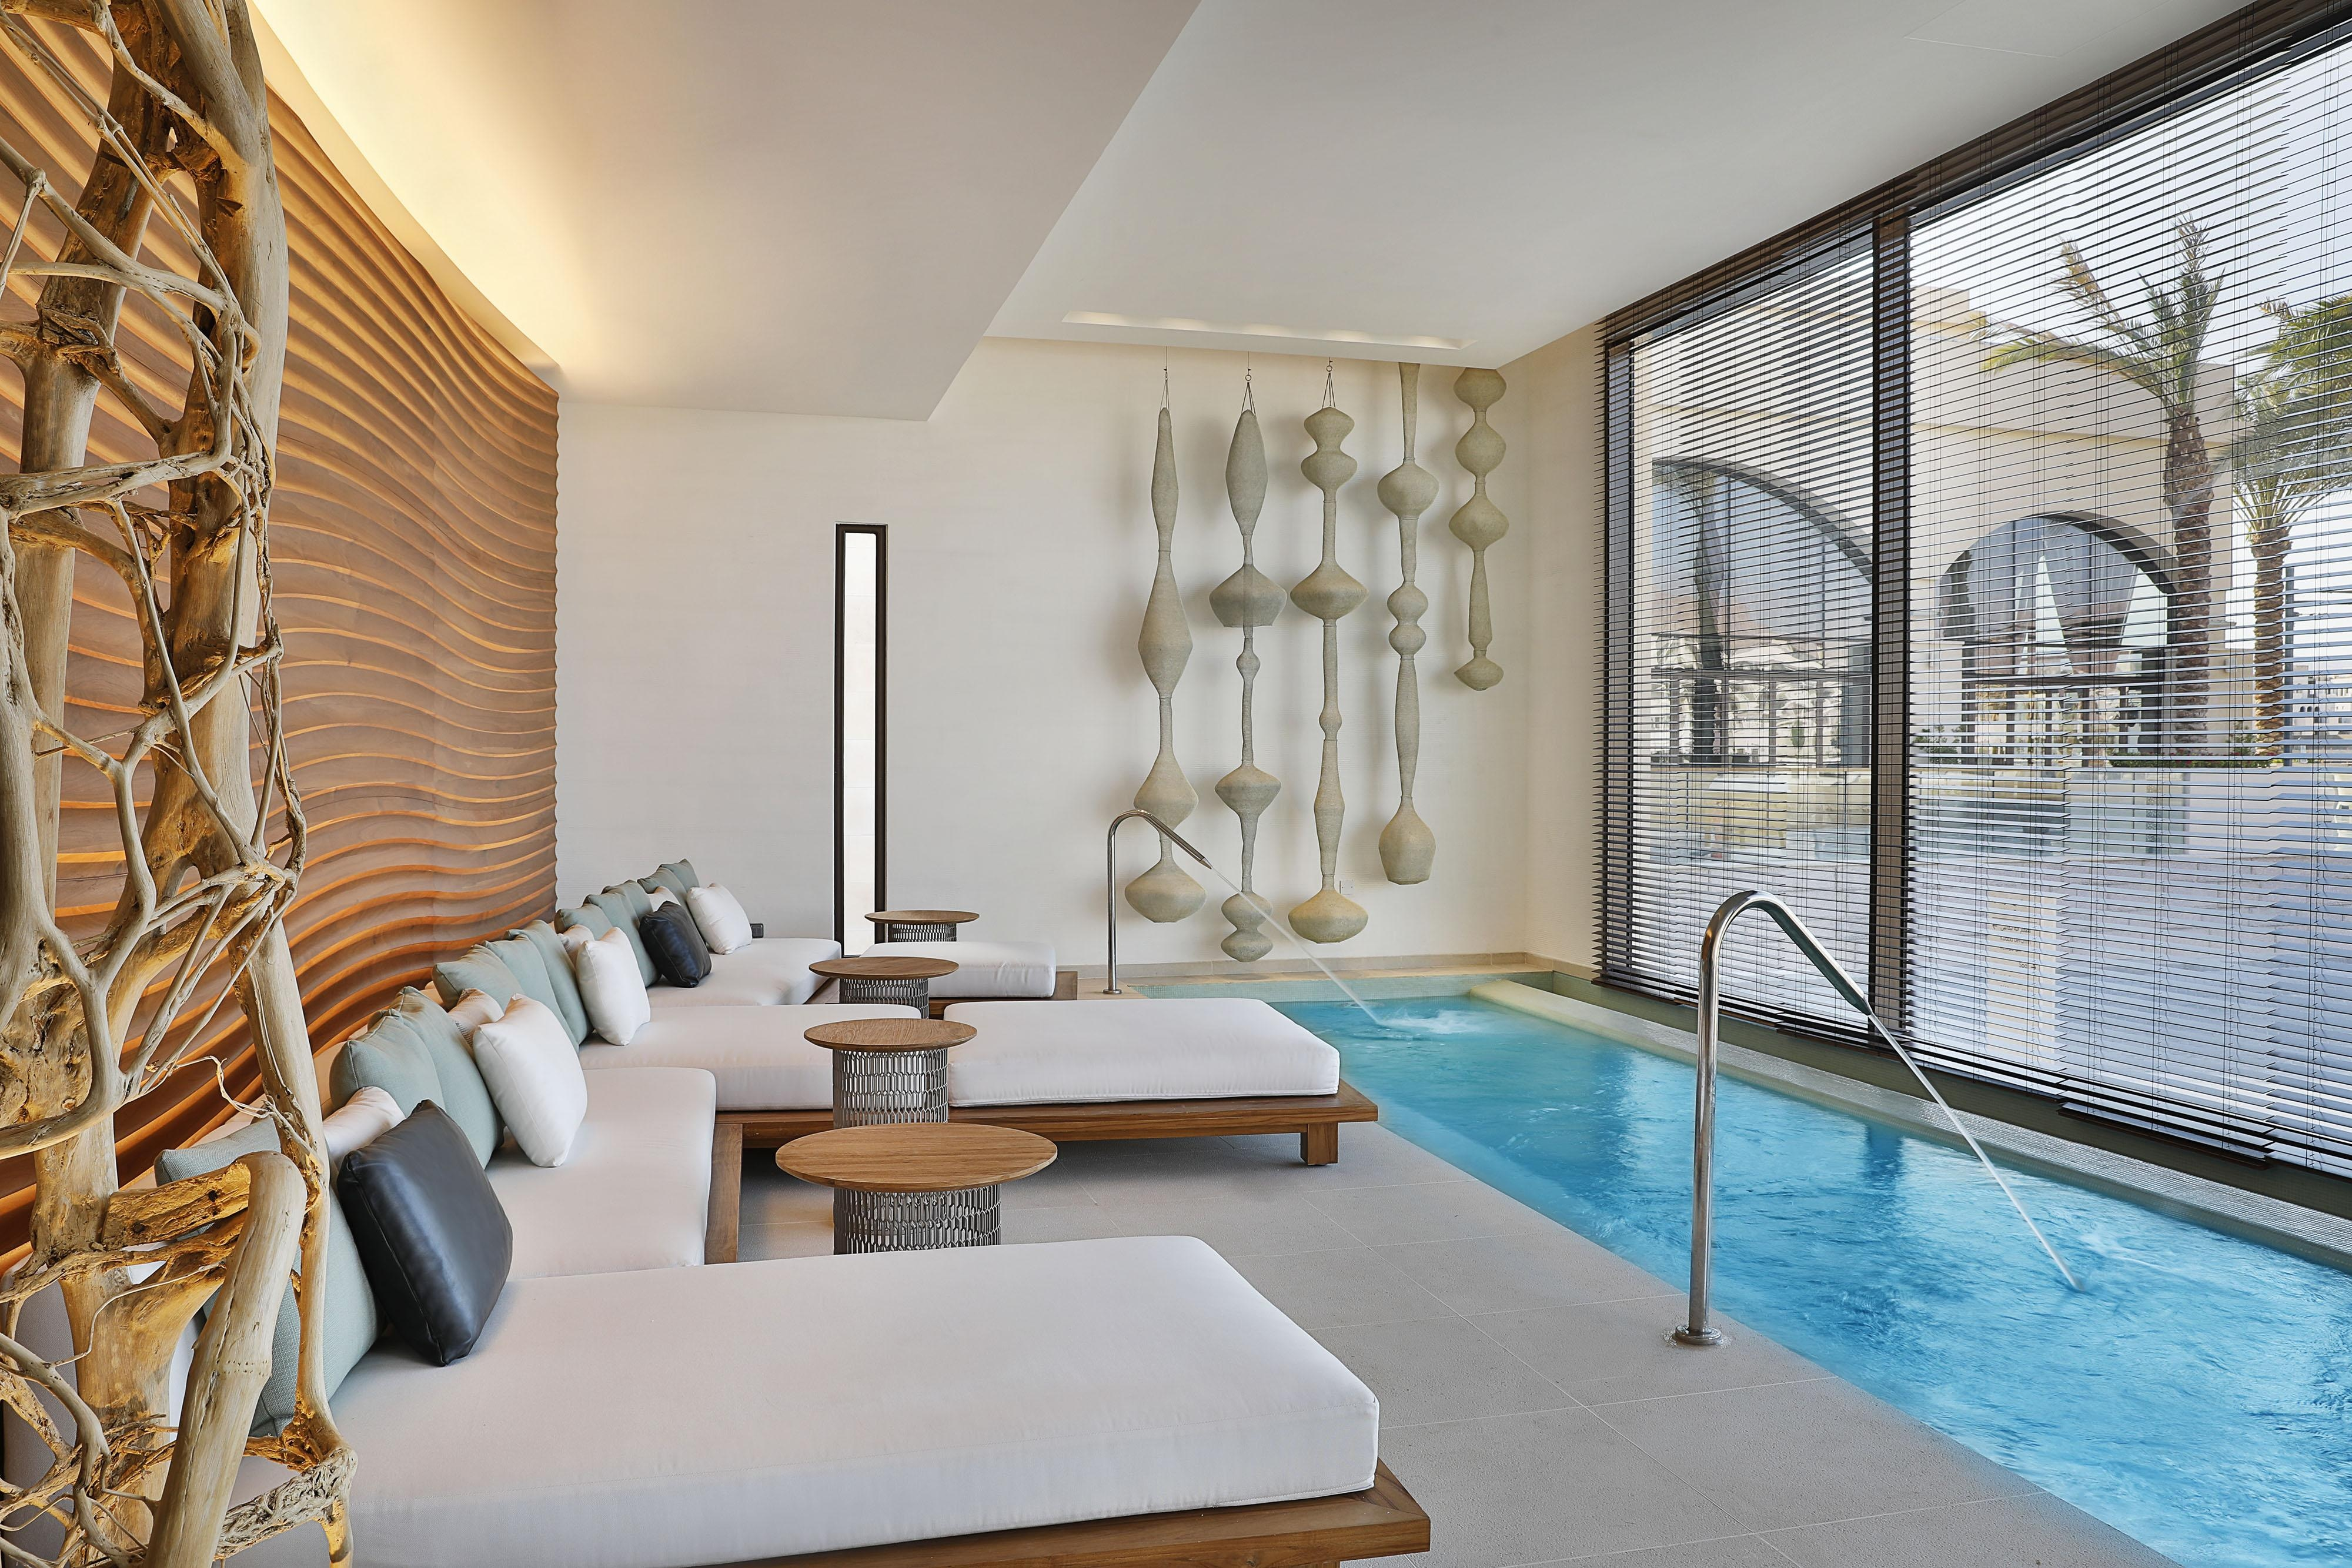 Unwind and make most of your day by enjoying our facilities at the Heavenly Spa, which includes male and female vitality pools, relaxation rooms and stimulating sauna and steam rooms.